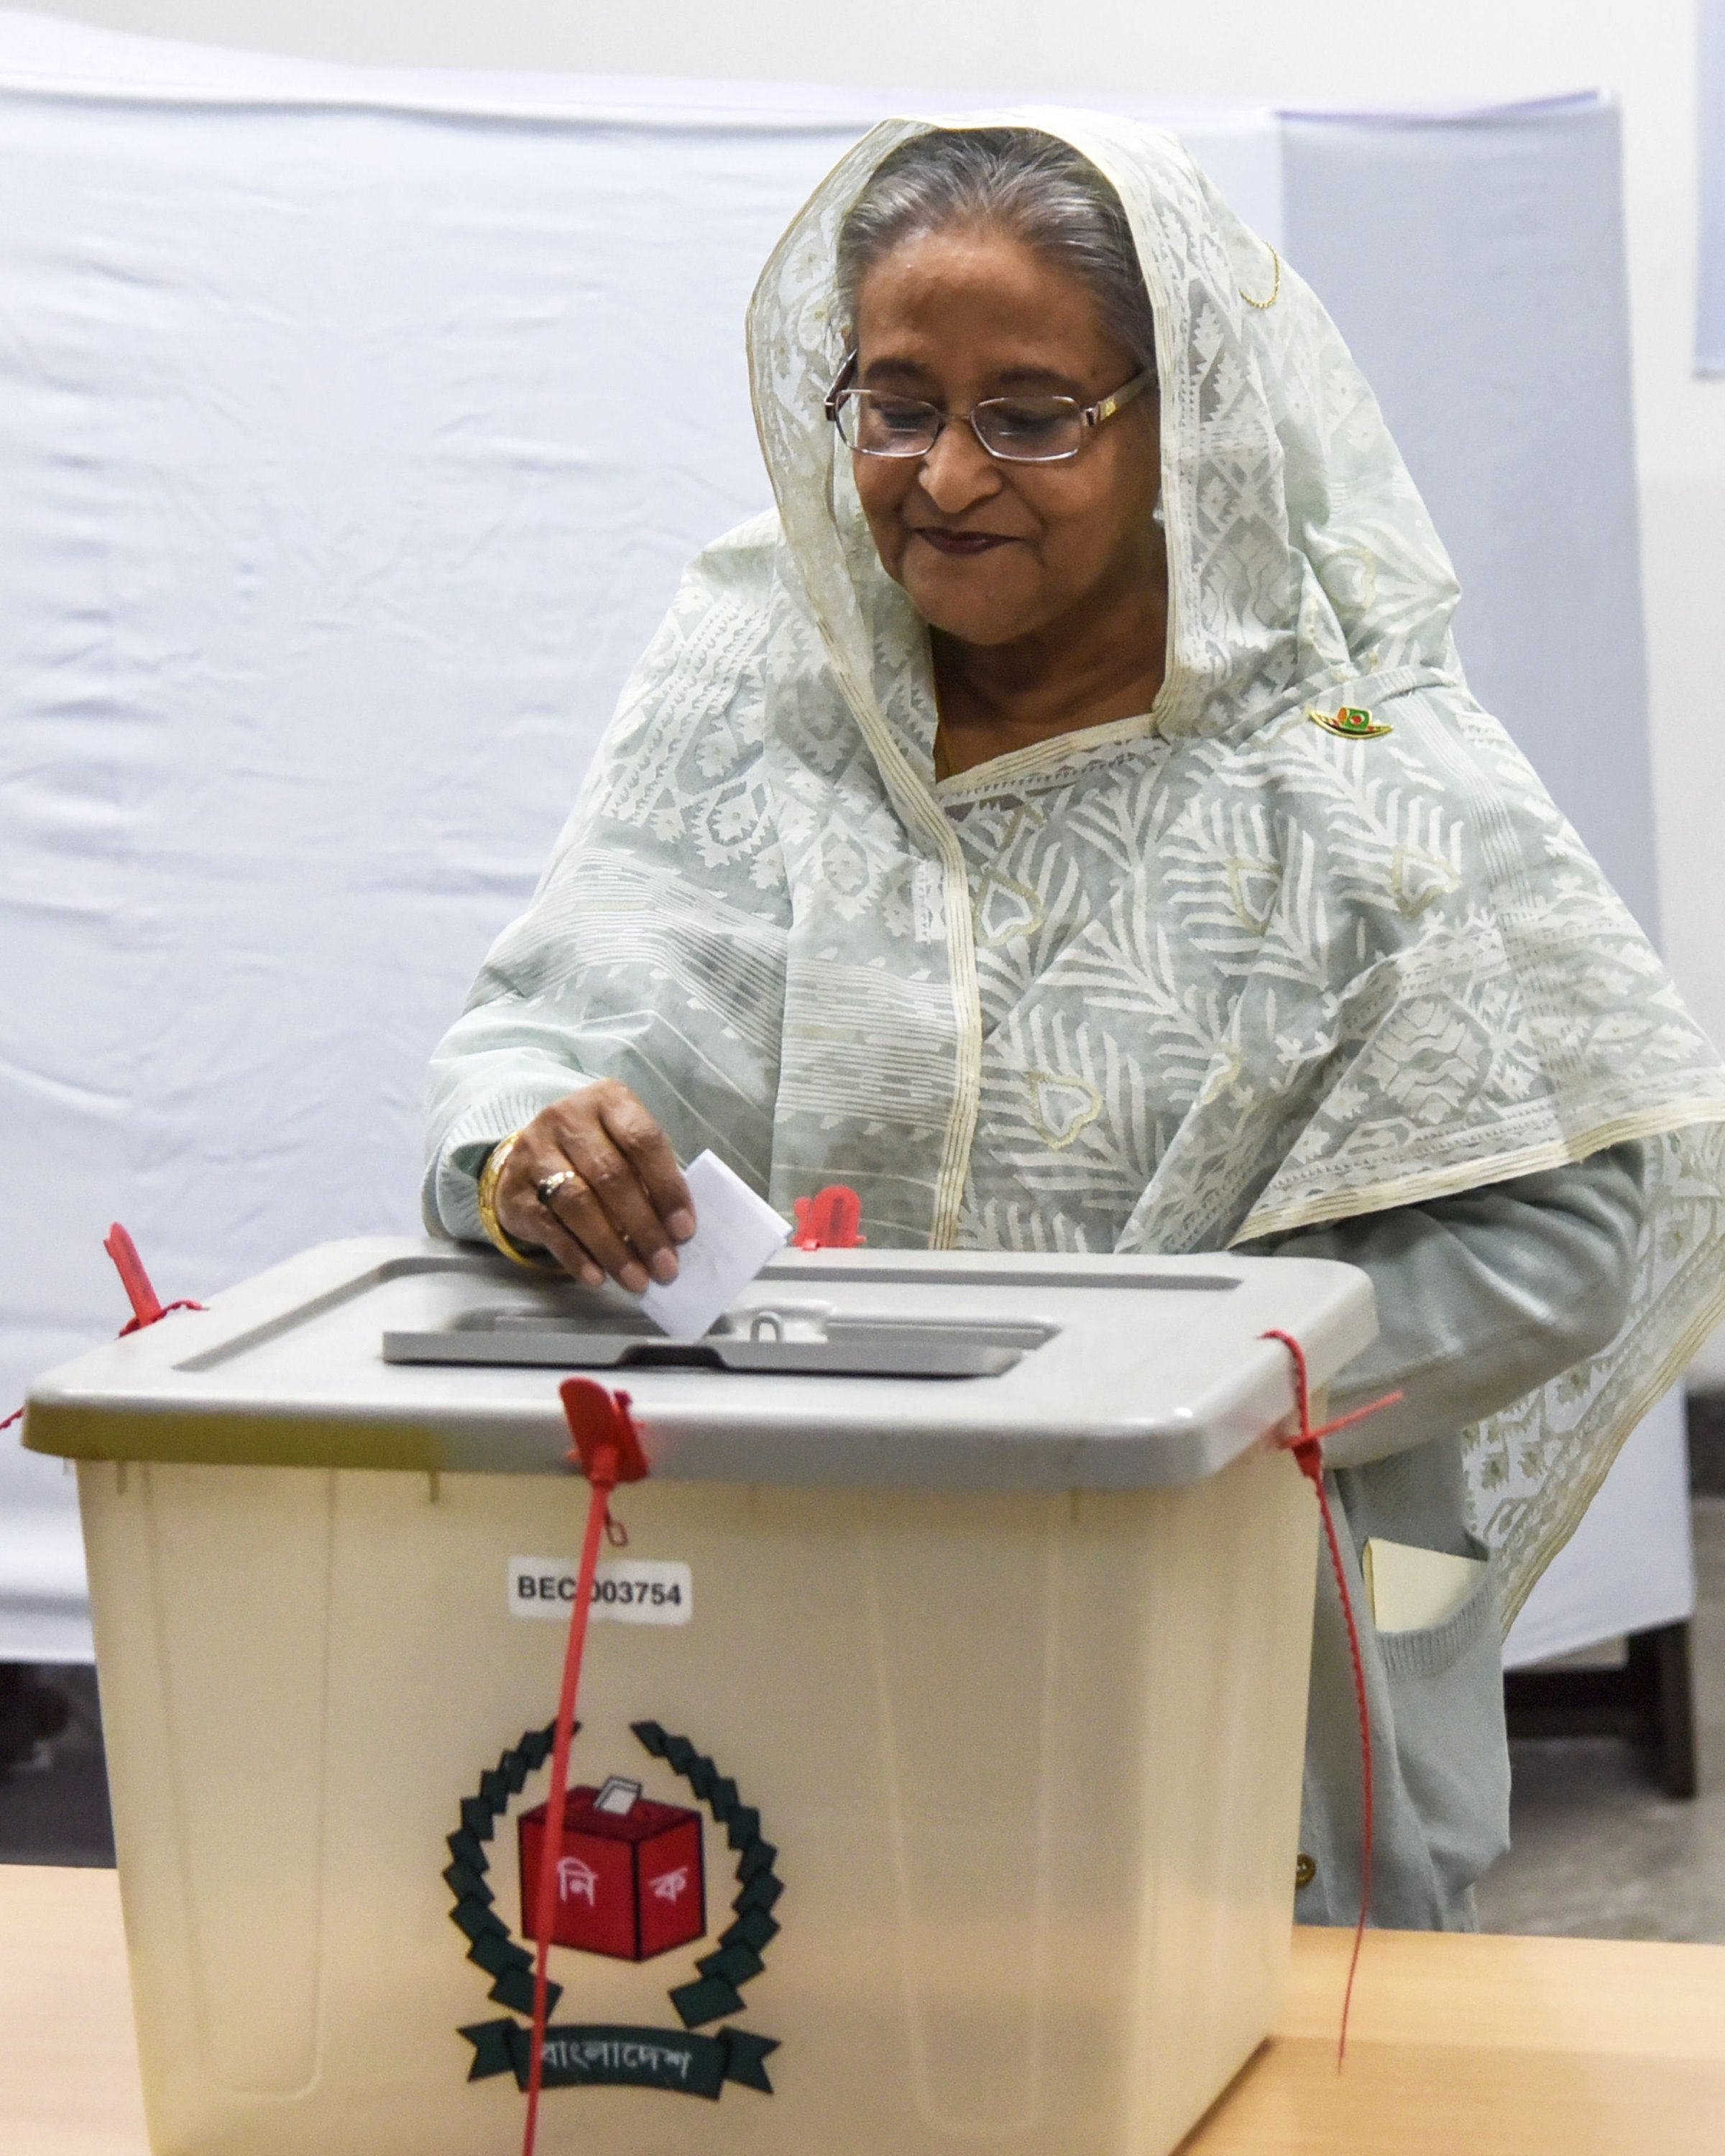 Bangladeshi Prime Minister Sheikh Hasina casts her vote at a polling station in Dhaka on Dec. 30, 2018.(AFP Photo)